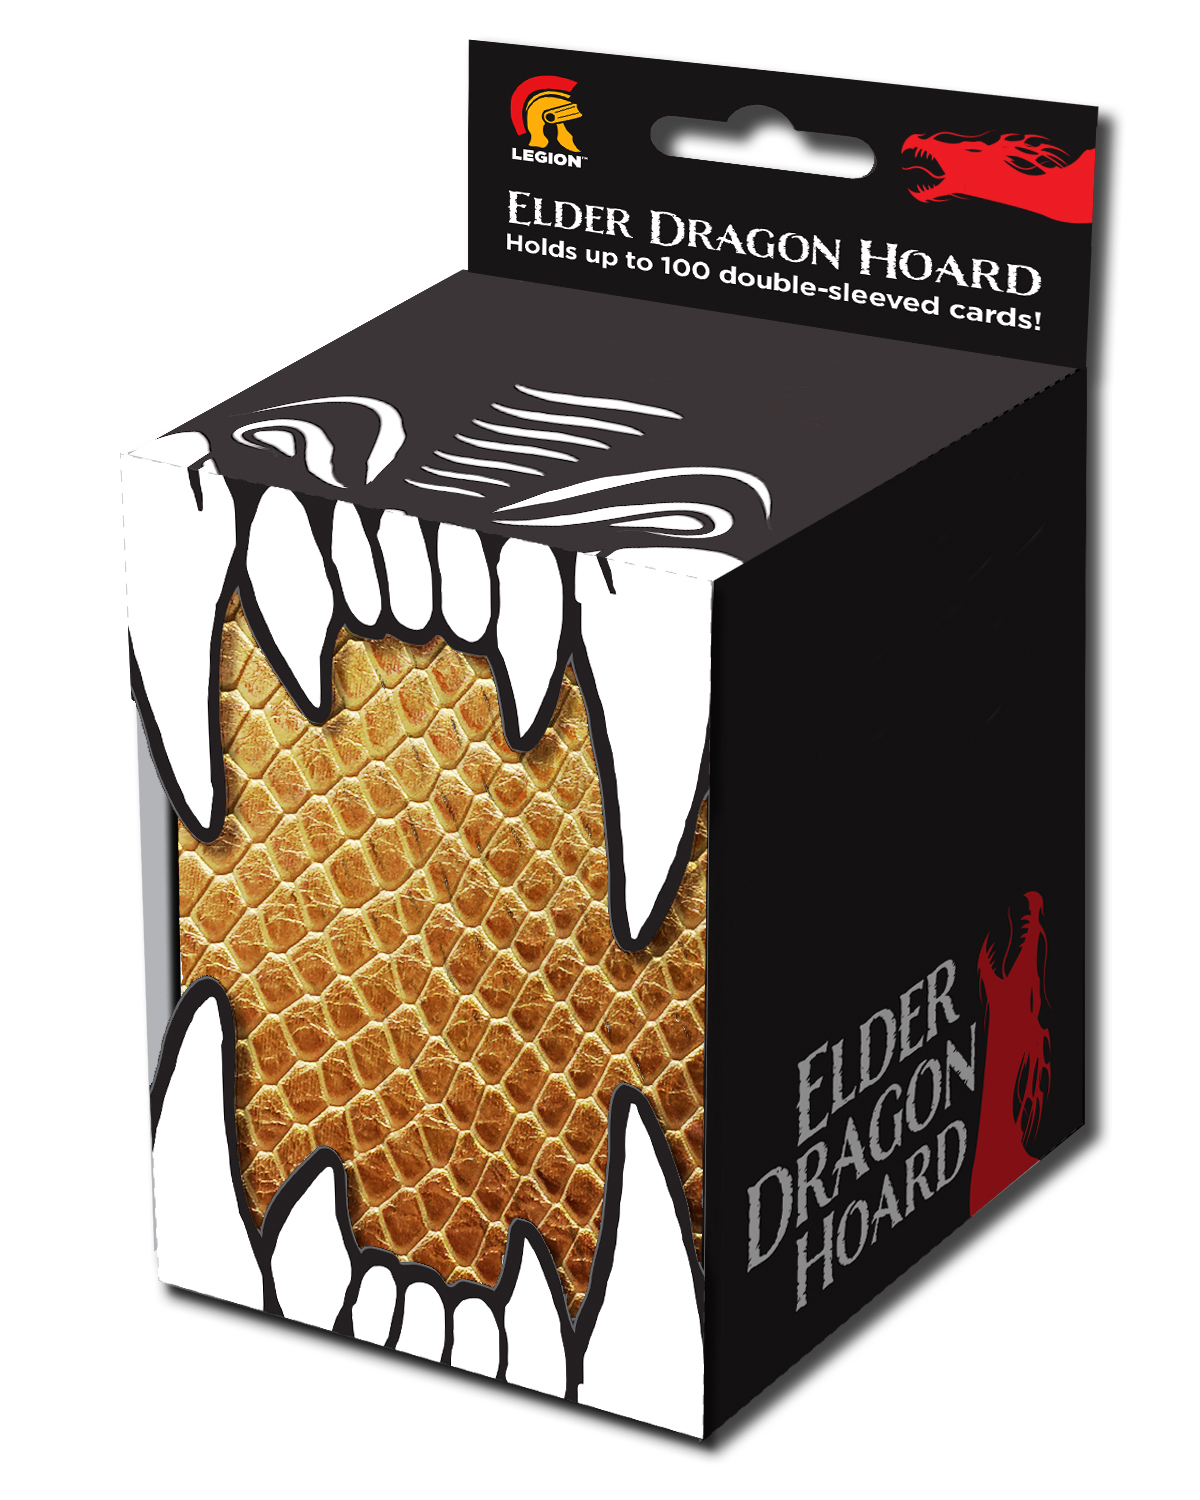 Hoard - Dragon Hide Gold